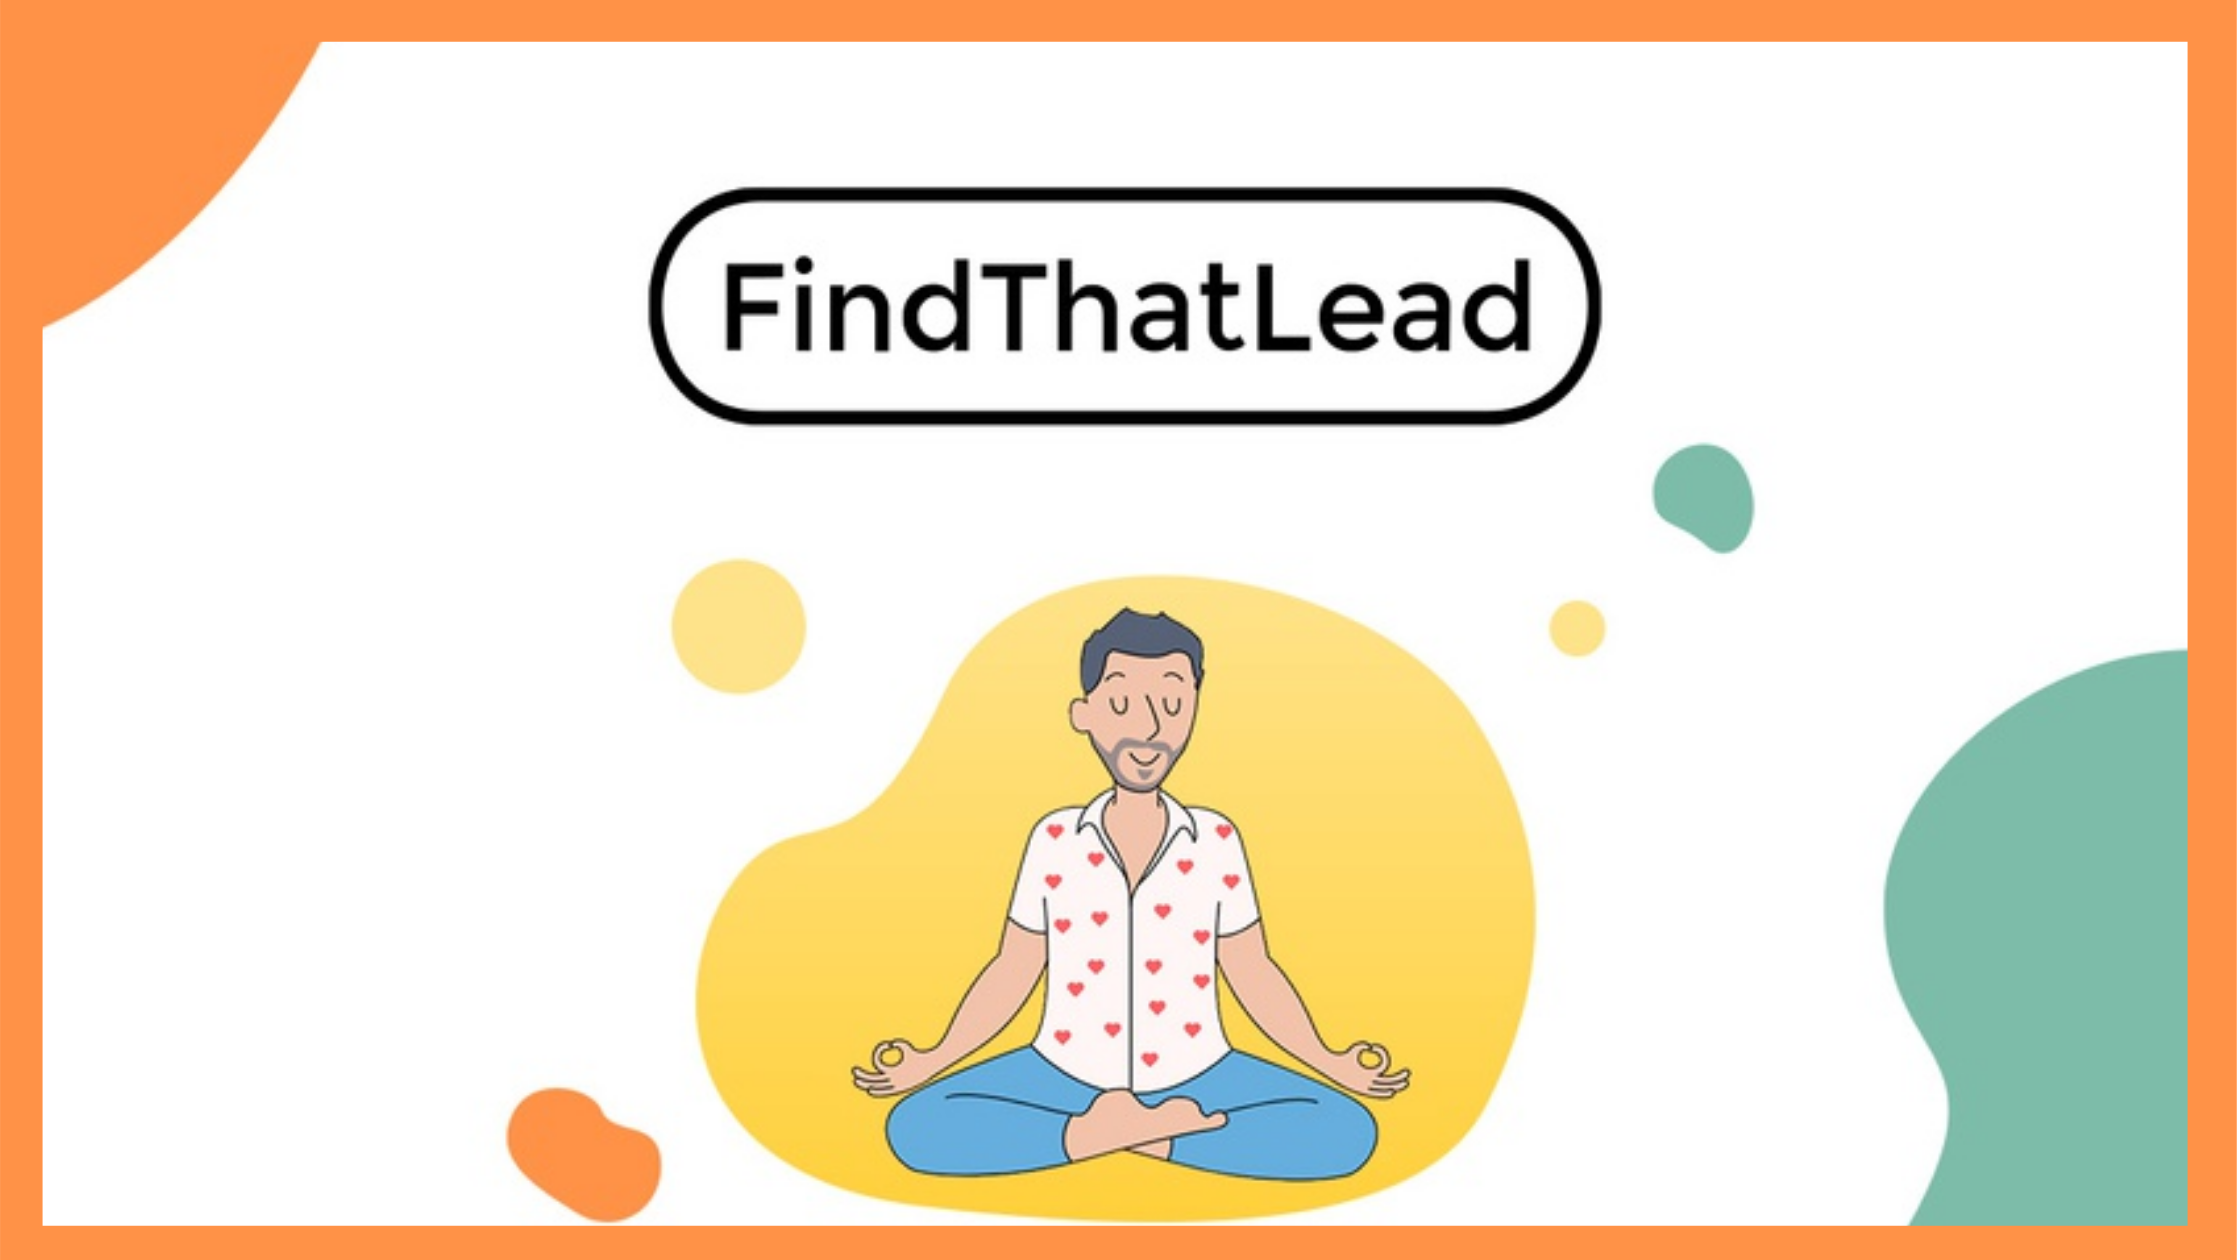 FindThatLead: Find, Verify & Contact Leads With One Tool